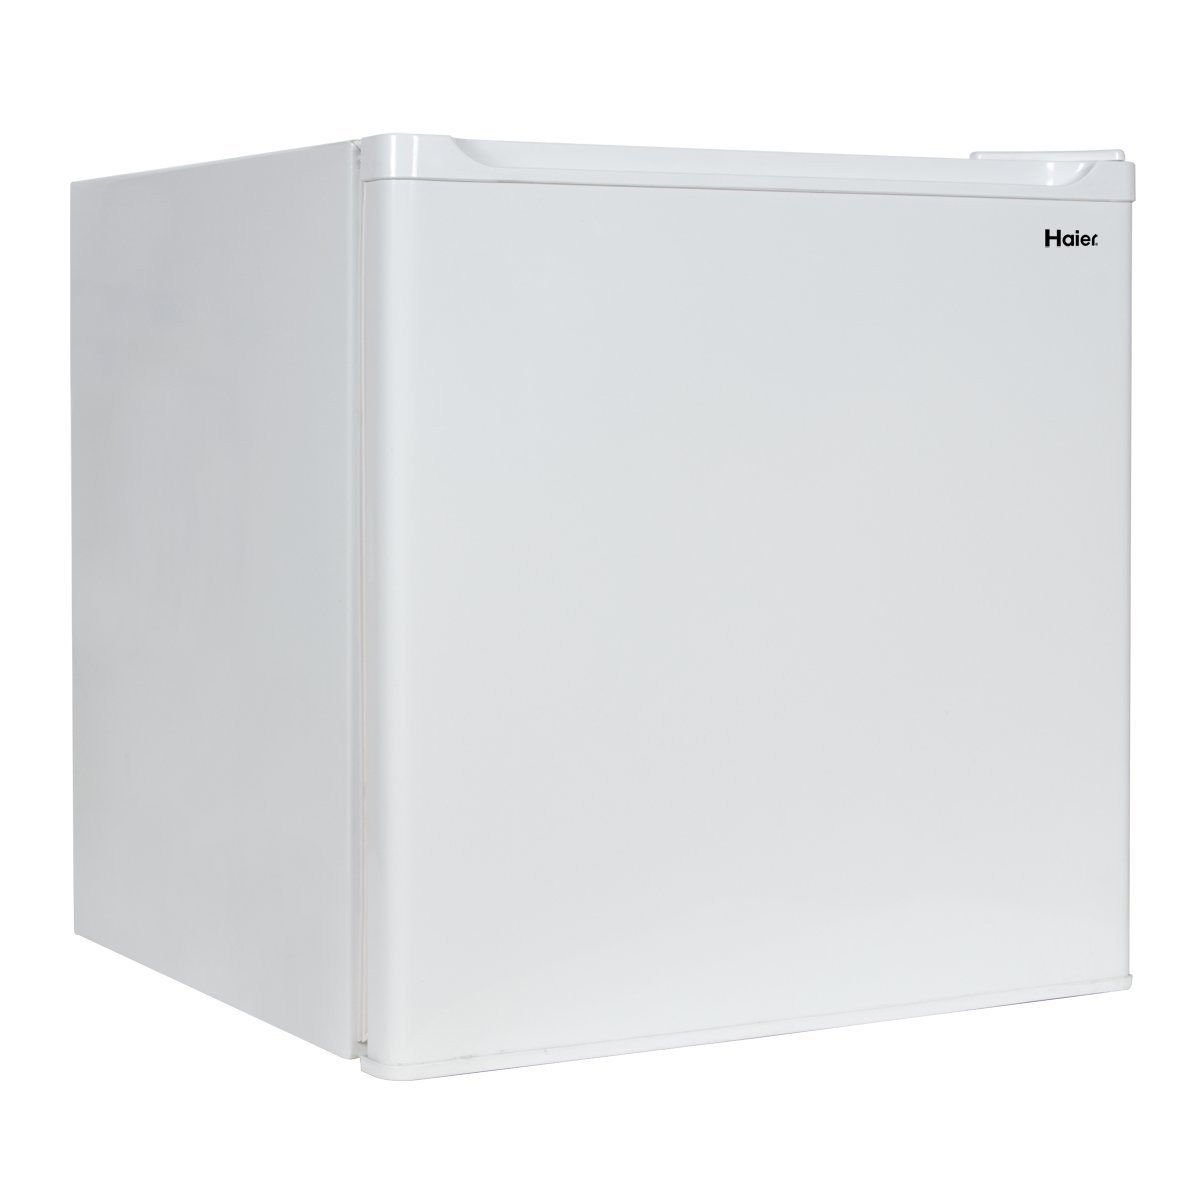 HAIER 1.7cf ThermElec Fridge - White - HSR17W